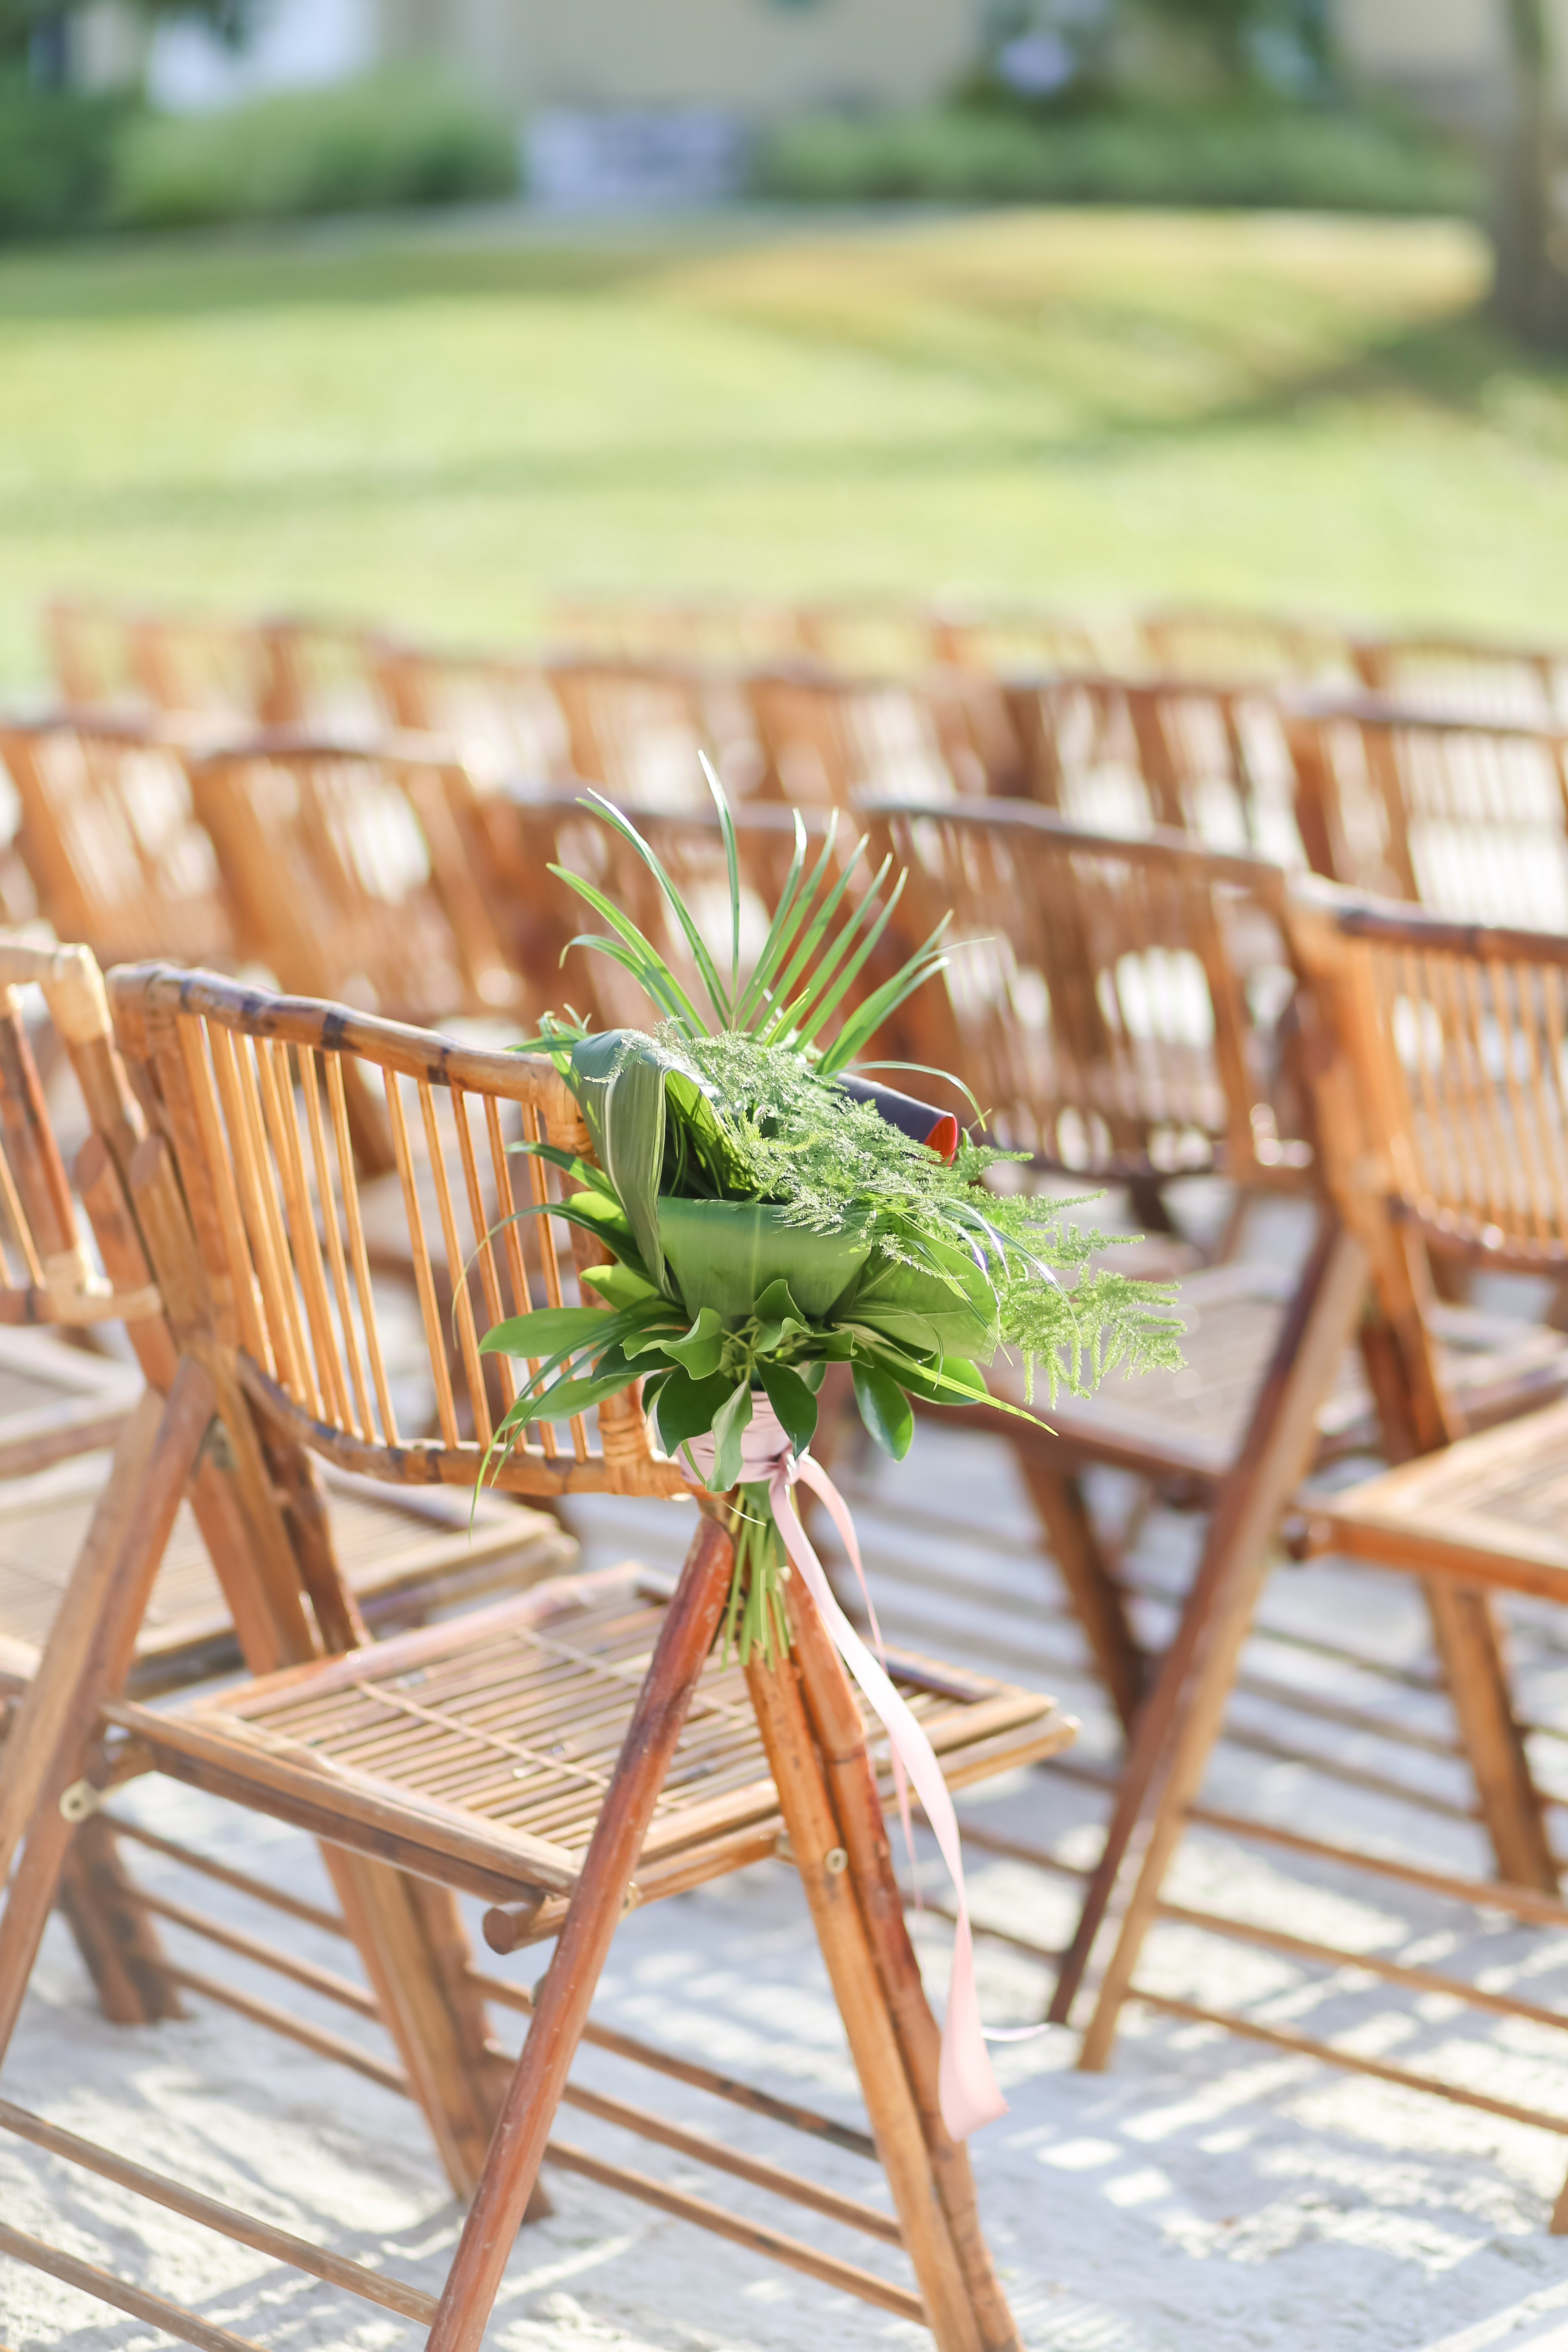 Florida Beach Elegant Wedding Ceremony Decor, Bamboo Wood Folding Chairs with Tropical Palm Leaf Tropical Floral Bouquet | Photographer LifeLong Photography Studios